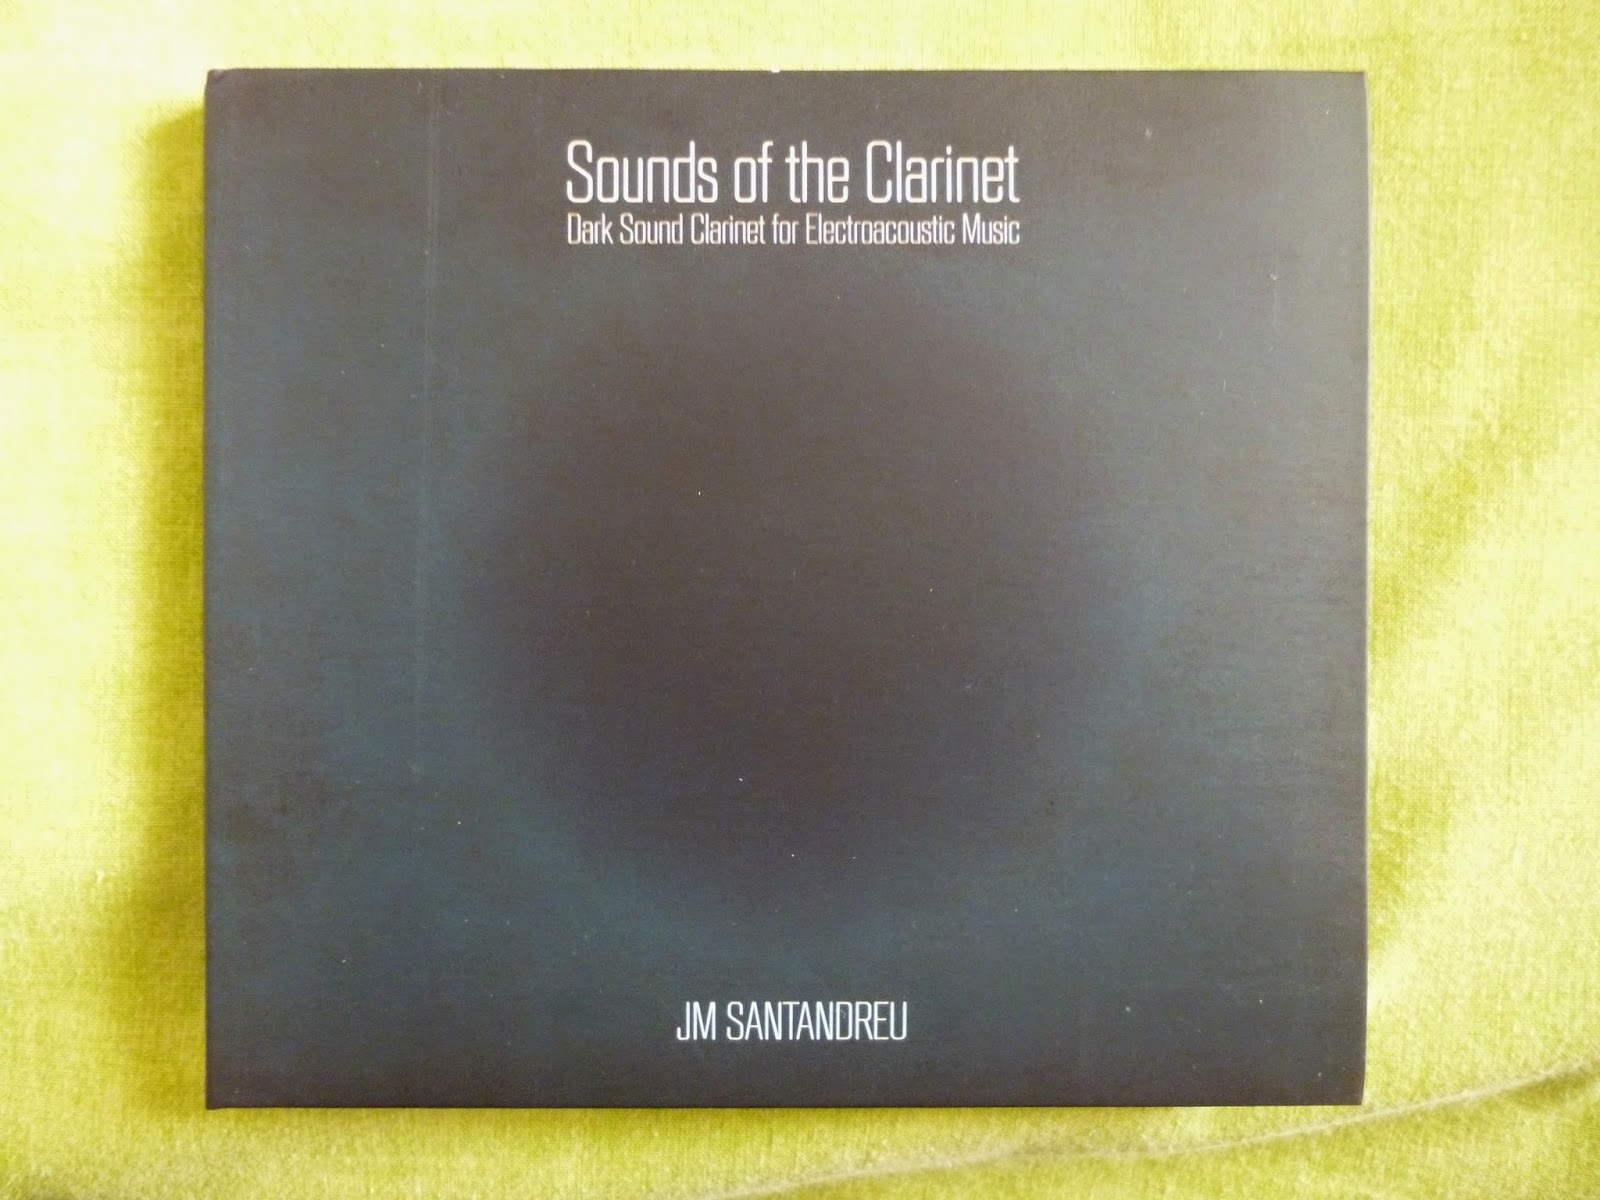 Sounds for clarimet santandreu